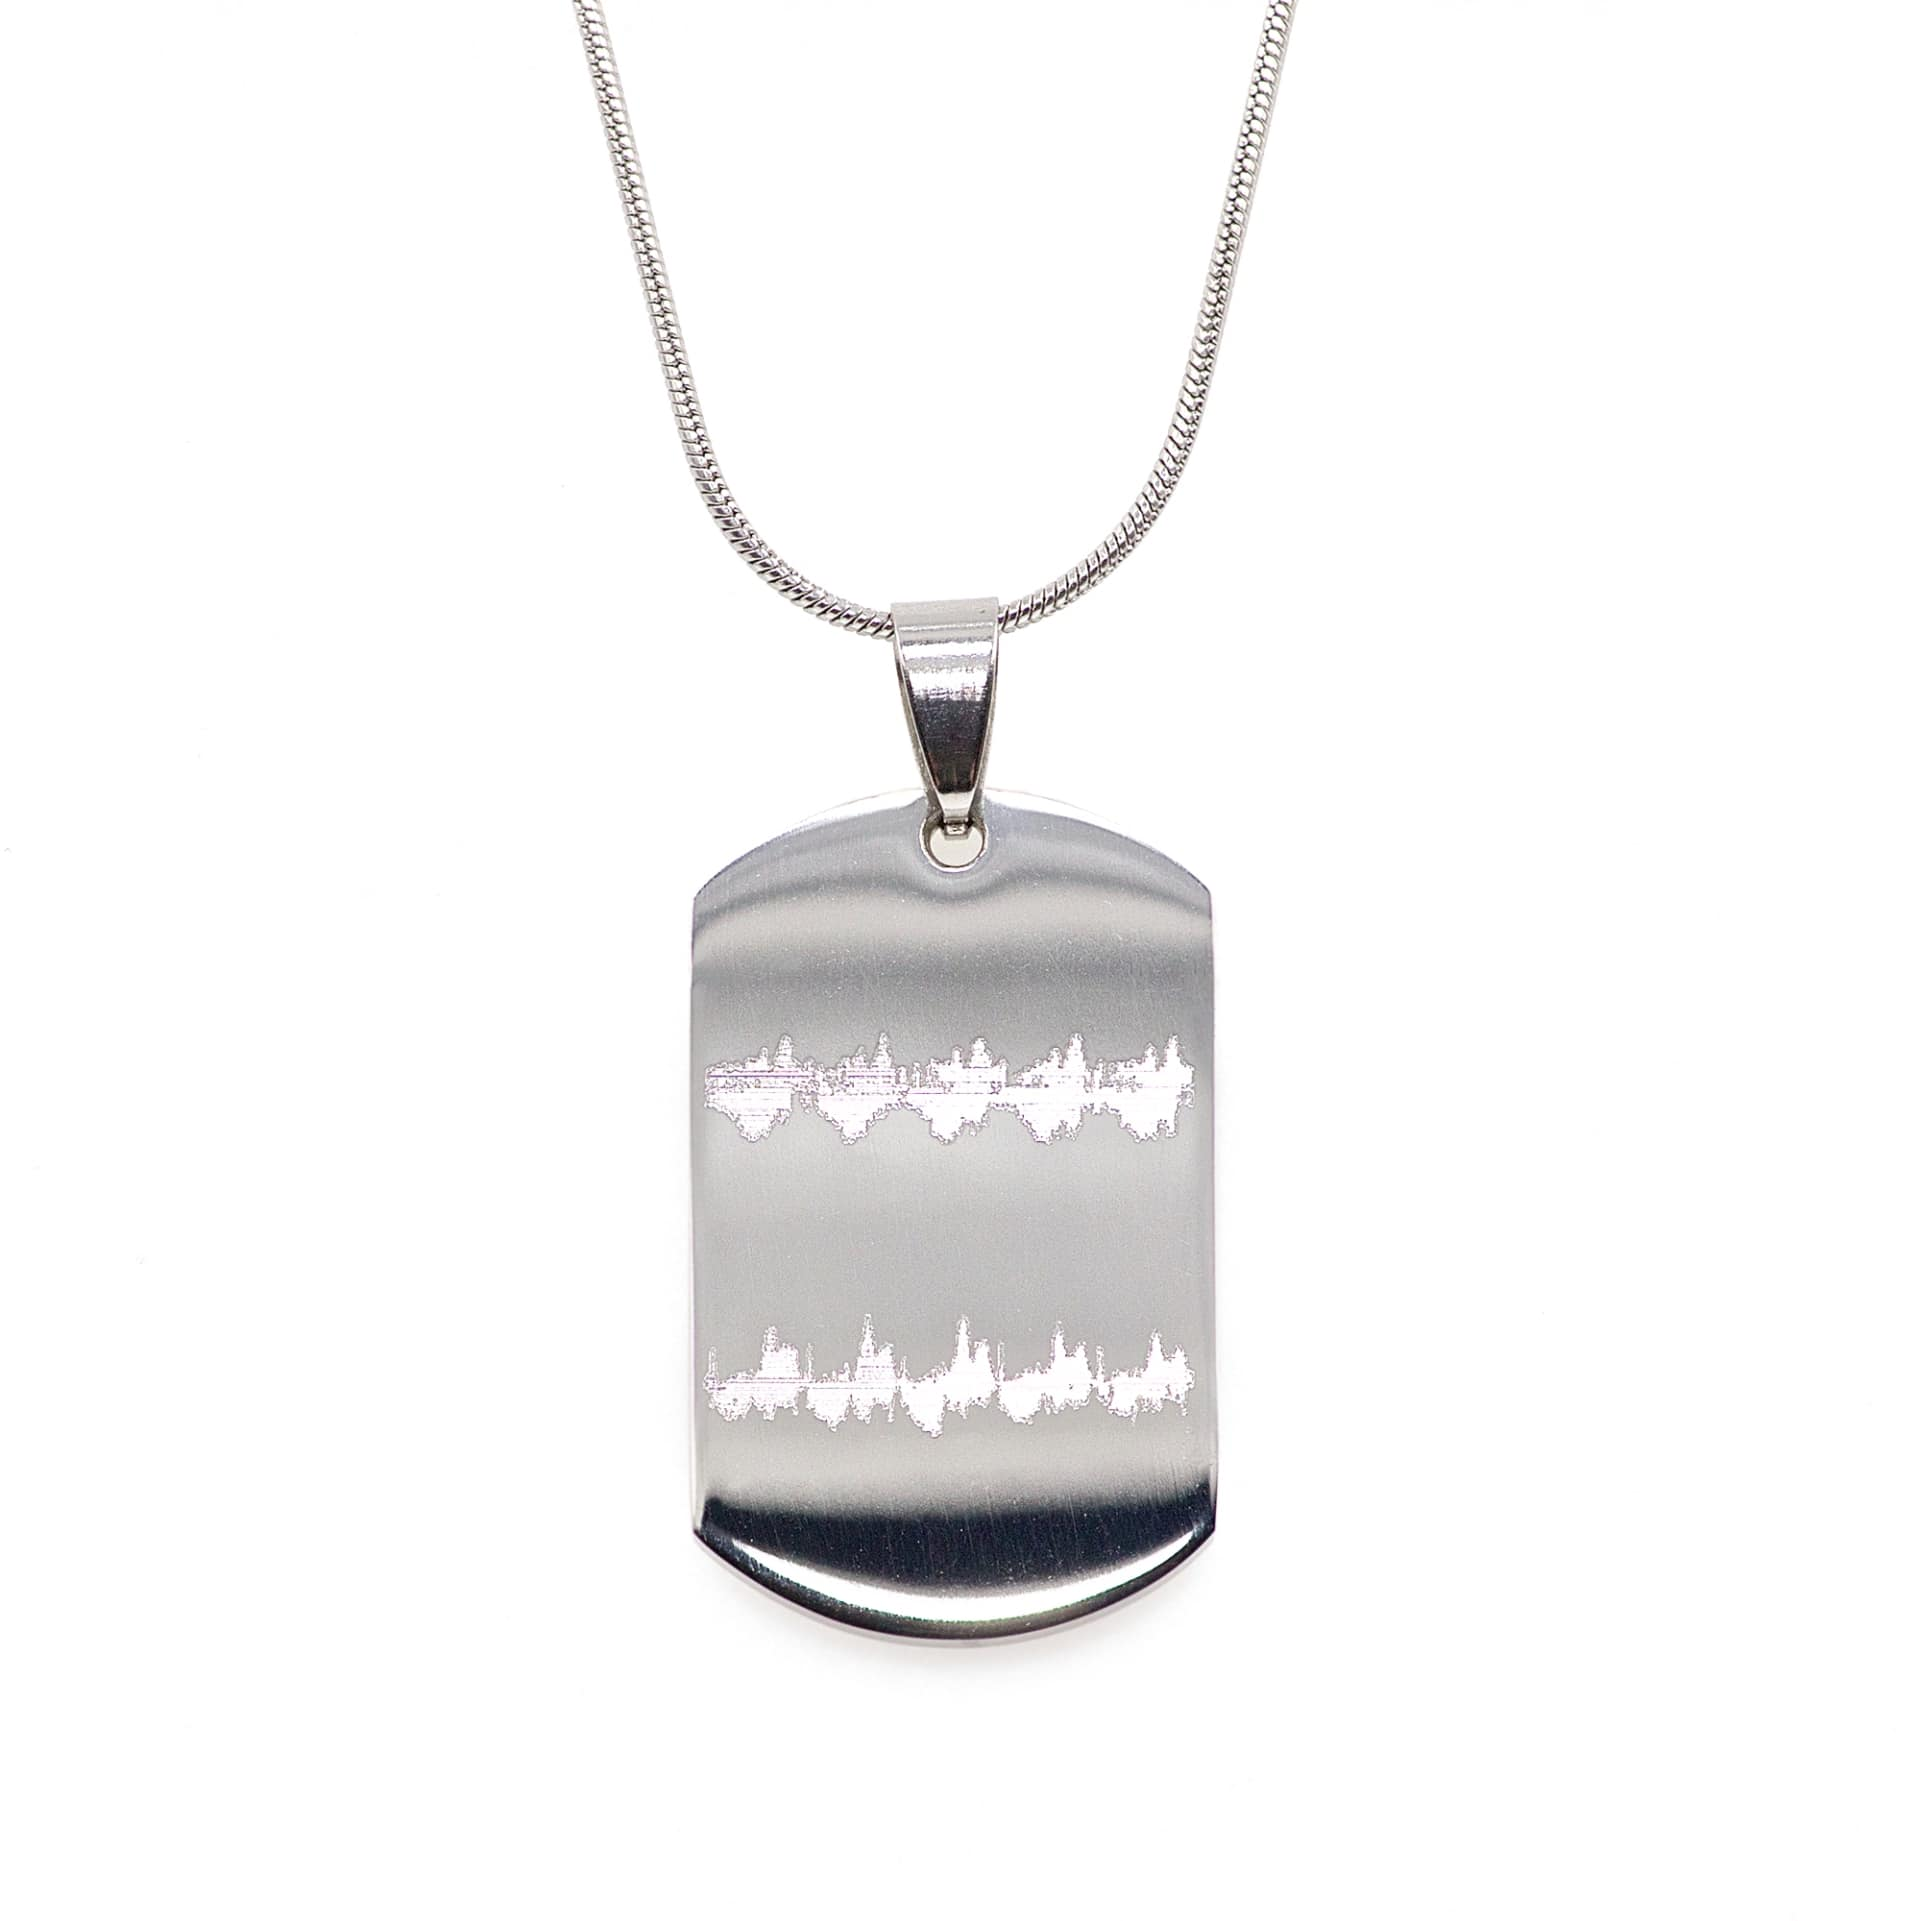 Dog Tag Keyring with Baby/'s Actual Heartbeat and Name Engraving Custom Heartwave Heartbeat Necklace Engraved Necklace Custom Jewelry